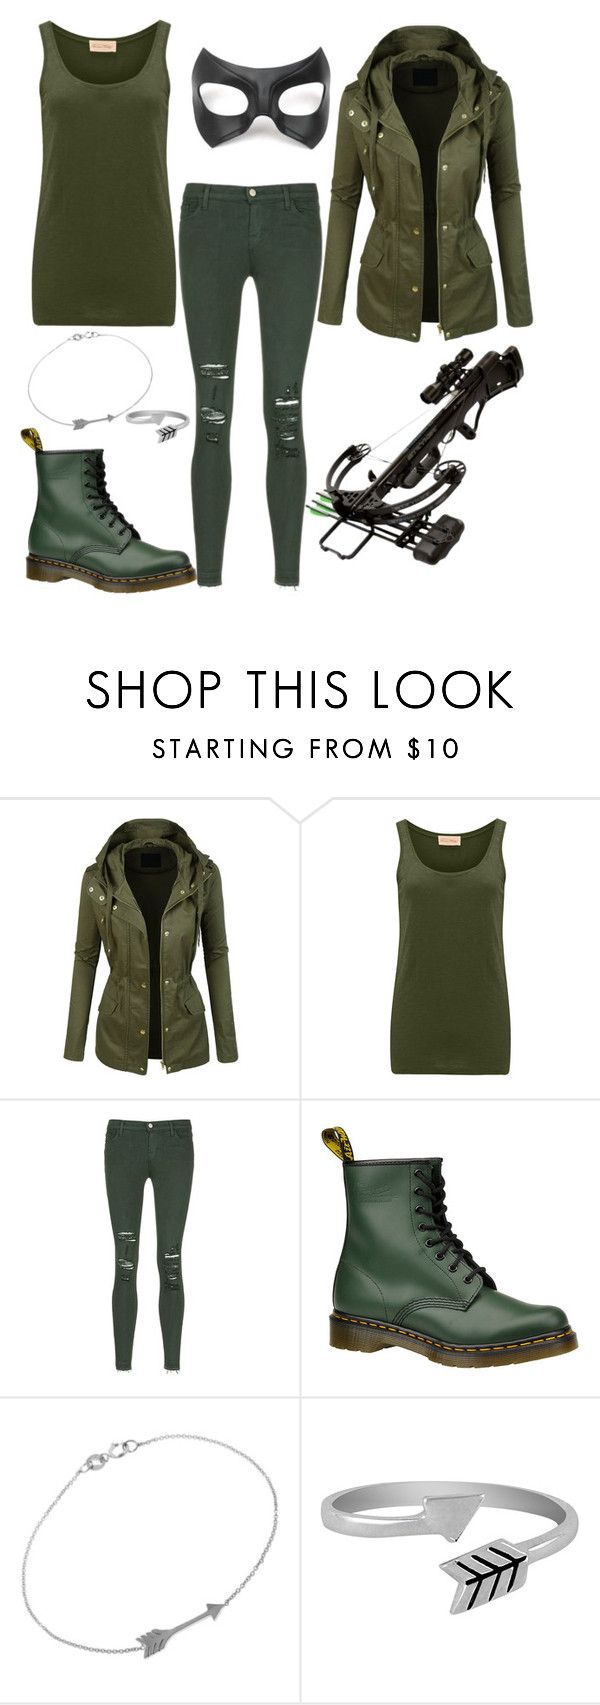 """Female Green Arrow."" by gracenerada ❤ liked on Polyvore featuring LE3NO, Masquerade, American Vintage, J Brand, Dr. Martens, Jennifer Meyer Jewelry and Jewel Exclusive"